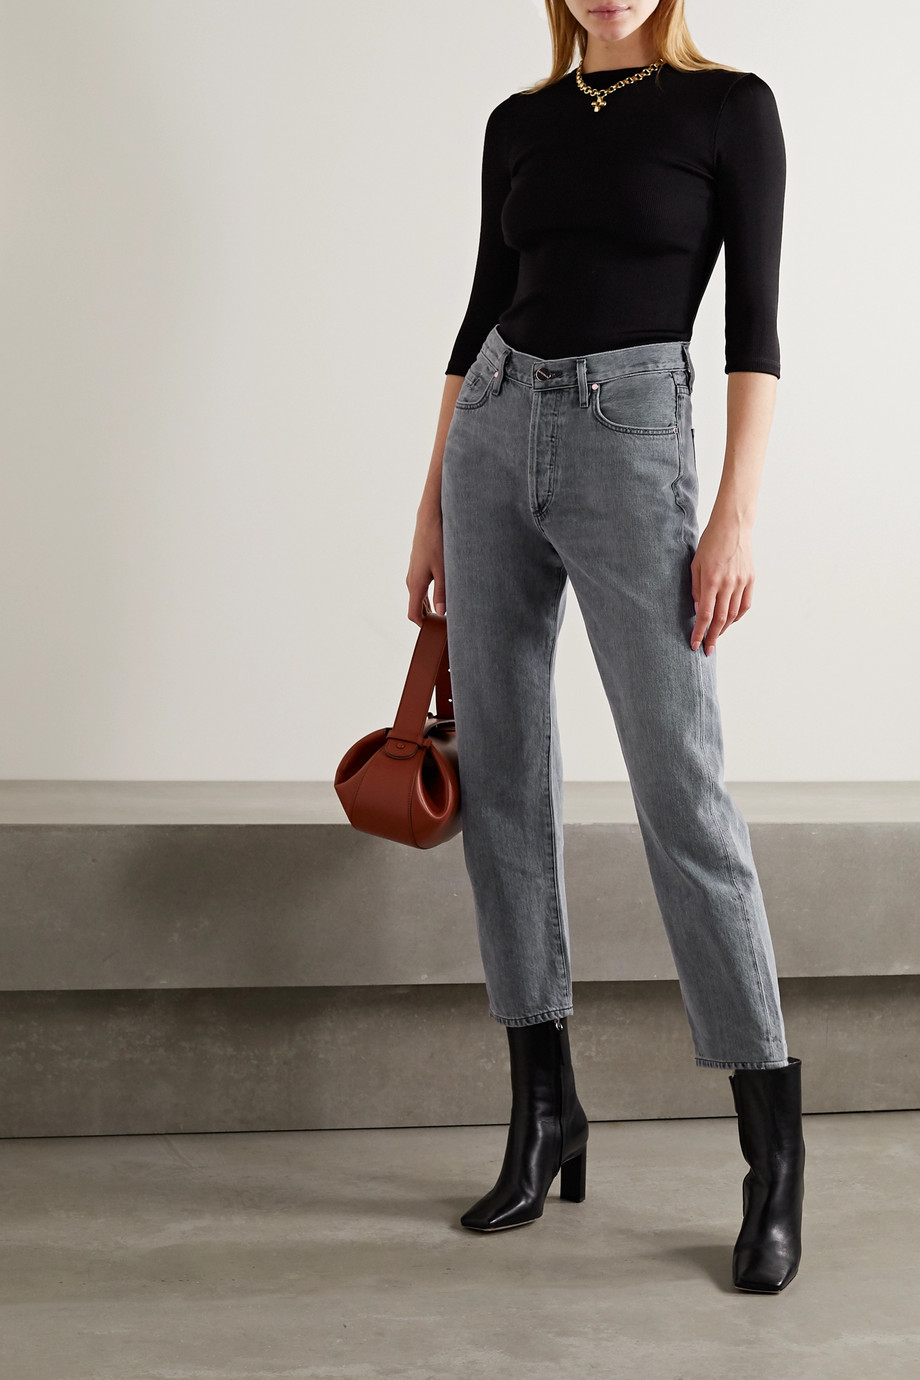 GOLDSIGN + NET SUSTAIN The Relaxed Straight mid-rise straight-leg jeans